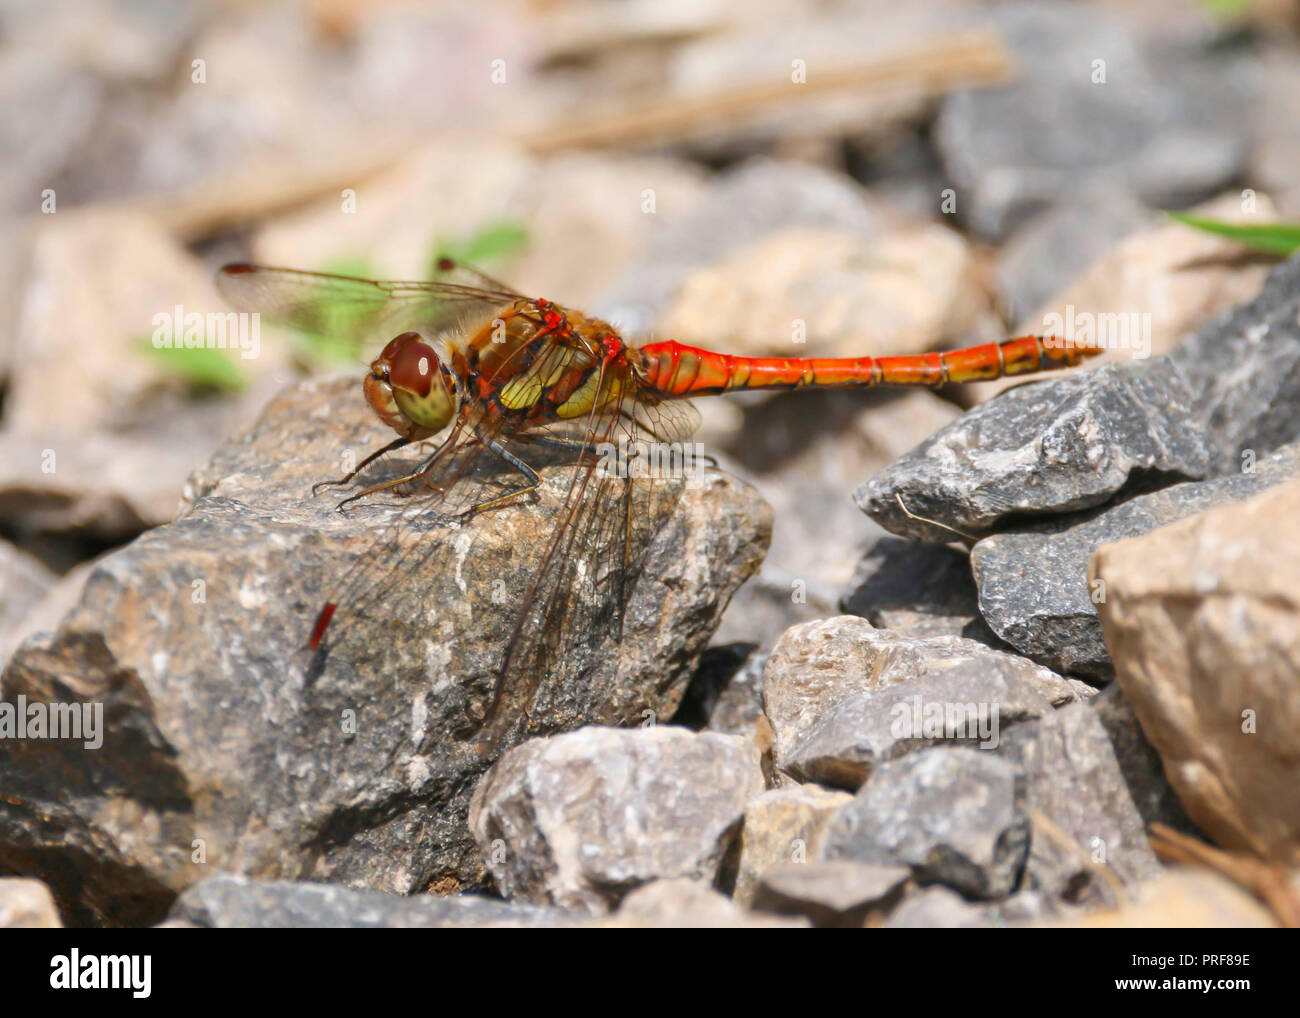 Common Darter Dragonfly (Sympetrum striolatum) male at rest on rock, UK Stock Photo